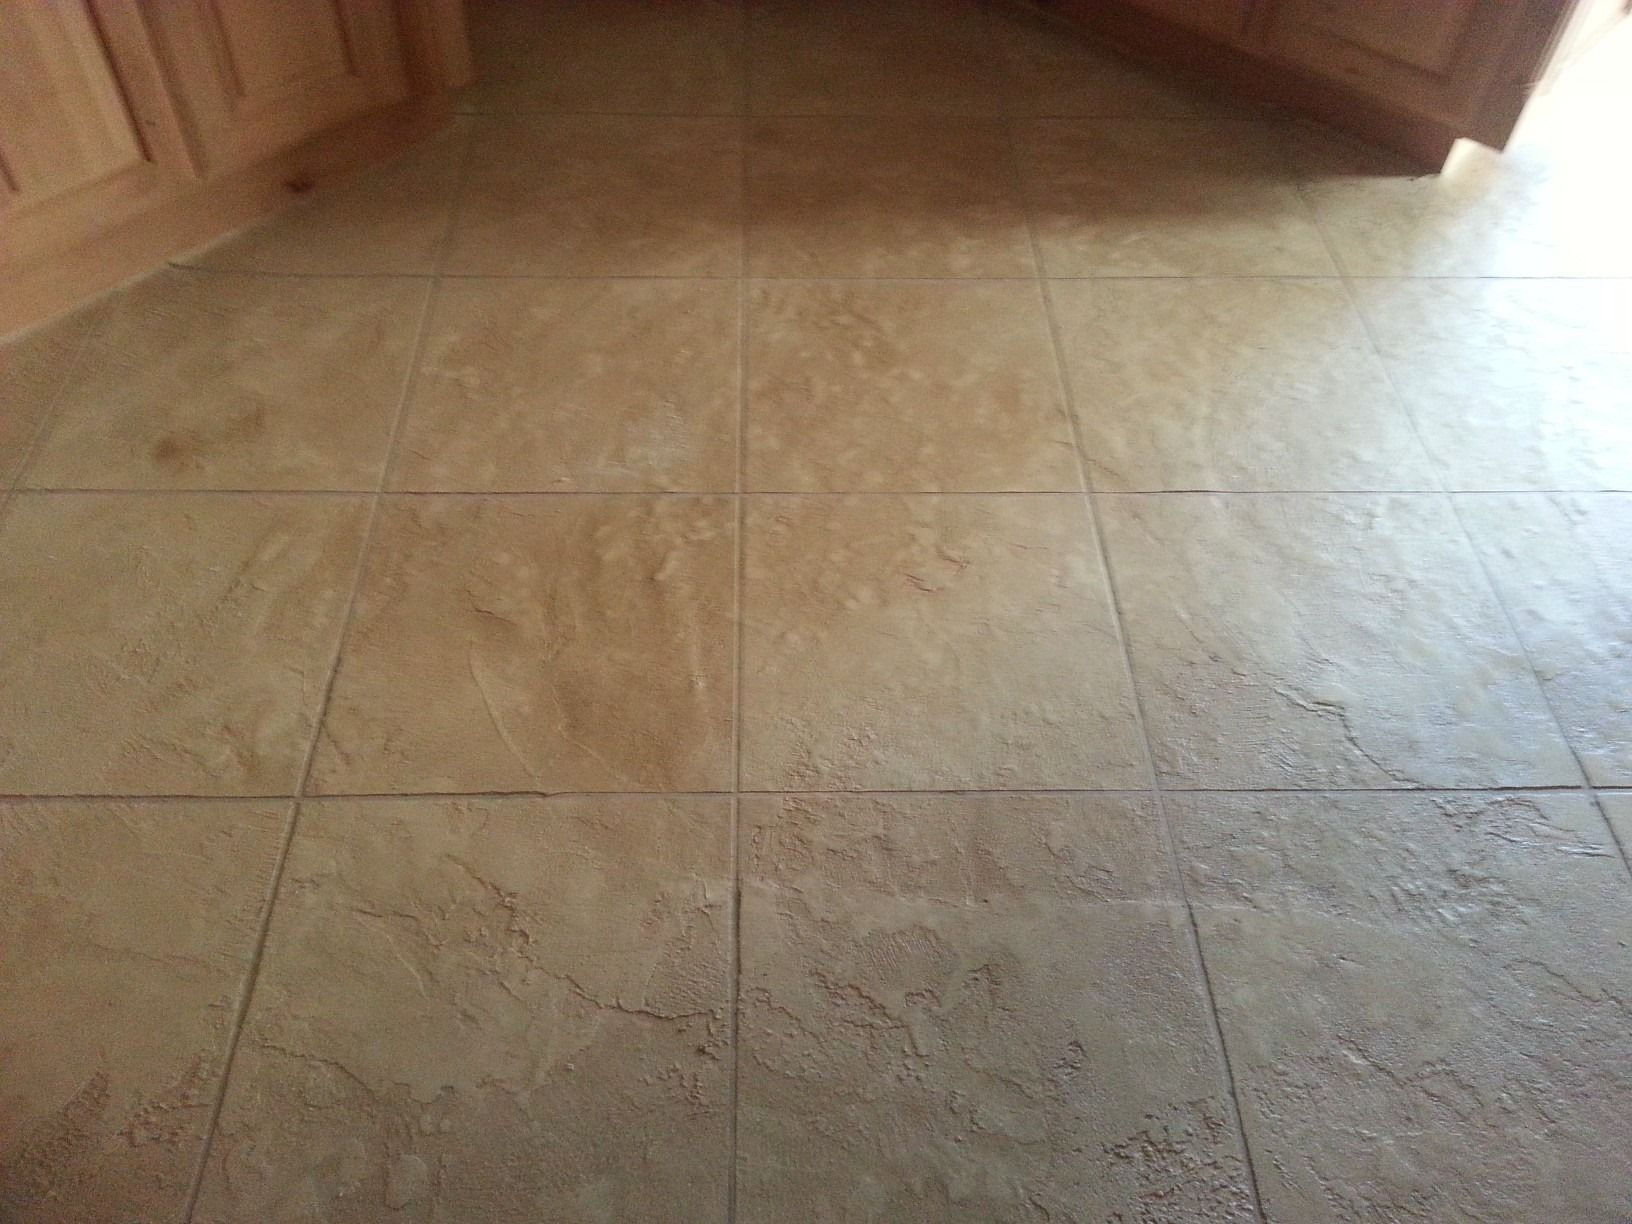 Decorative Travertine Tile Decorative Concretejls Concrete Designs This Is A Micro